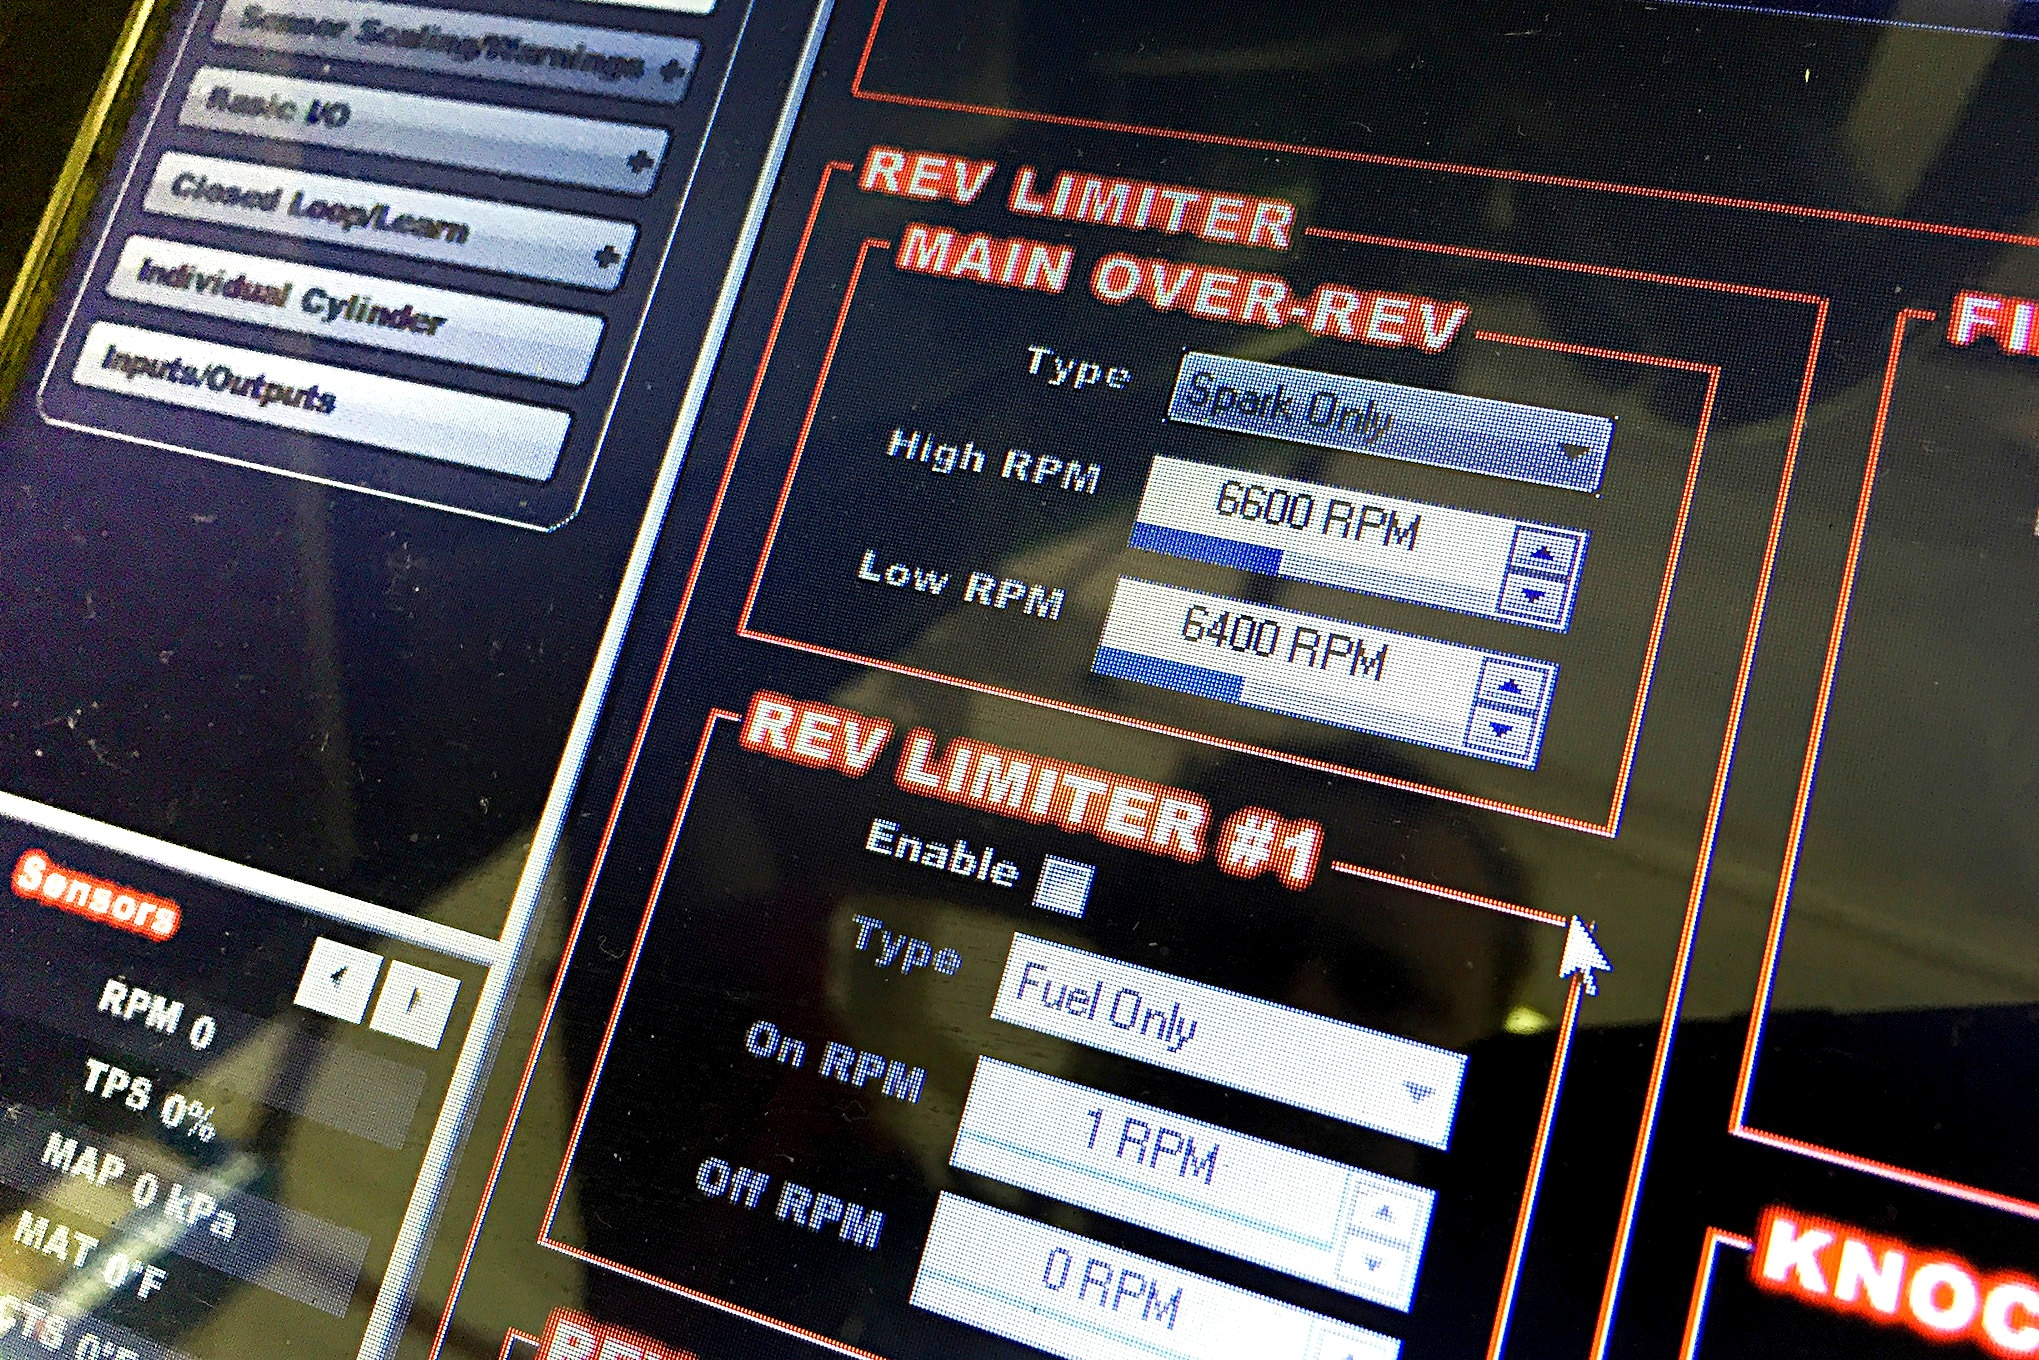 """Those who like to tinker with electronic engine tuning can modify every aspect of the LS1. For the first-time user, Holley has already loaded in its """"stock"""" configuration numbers to make it easy."""